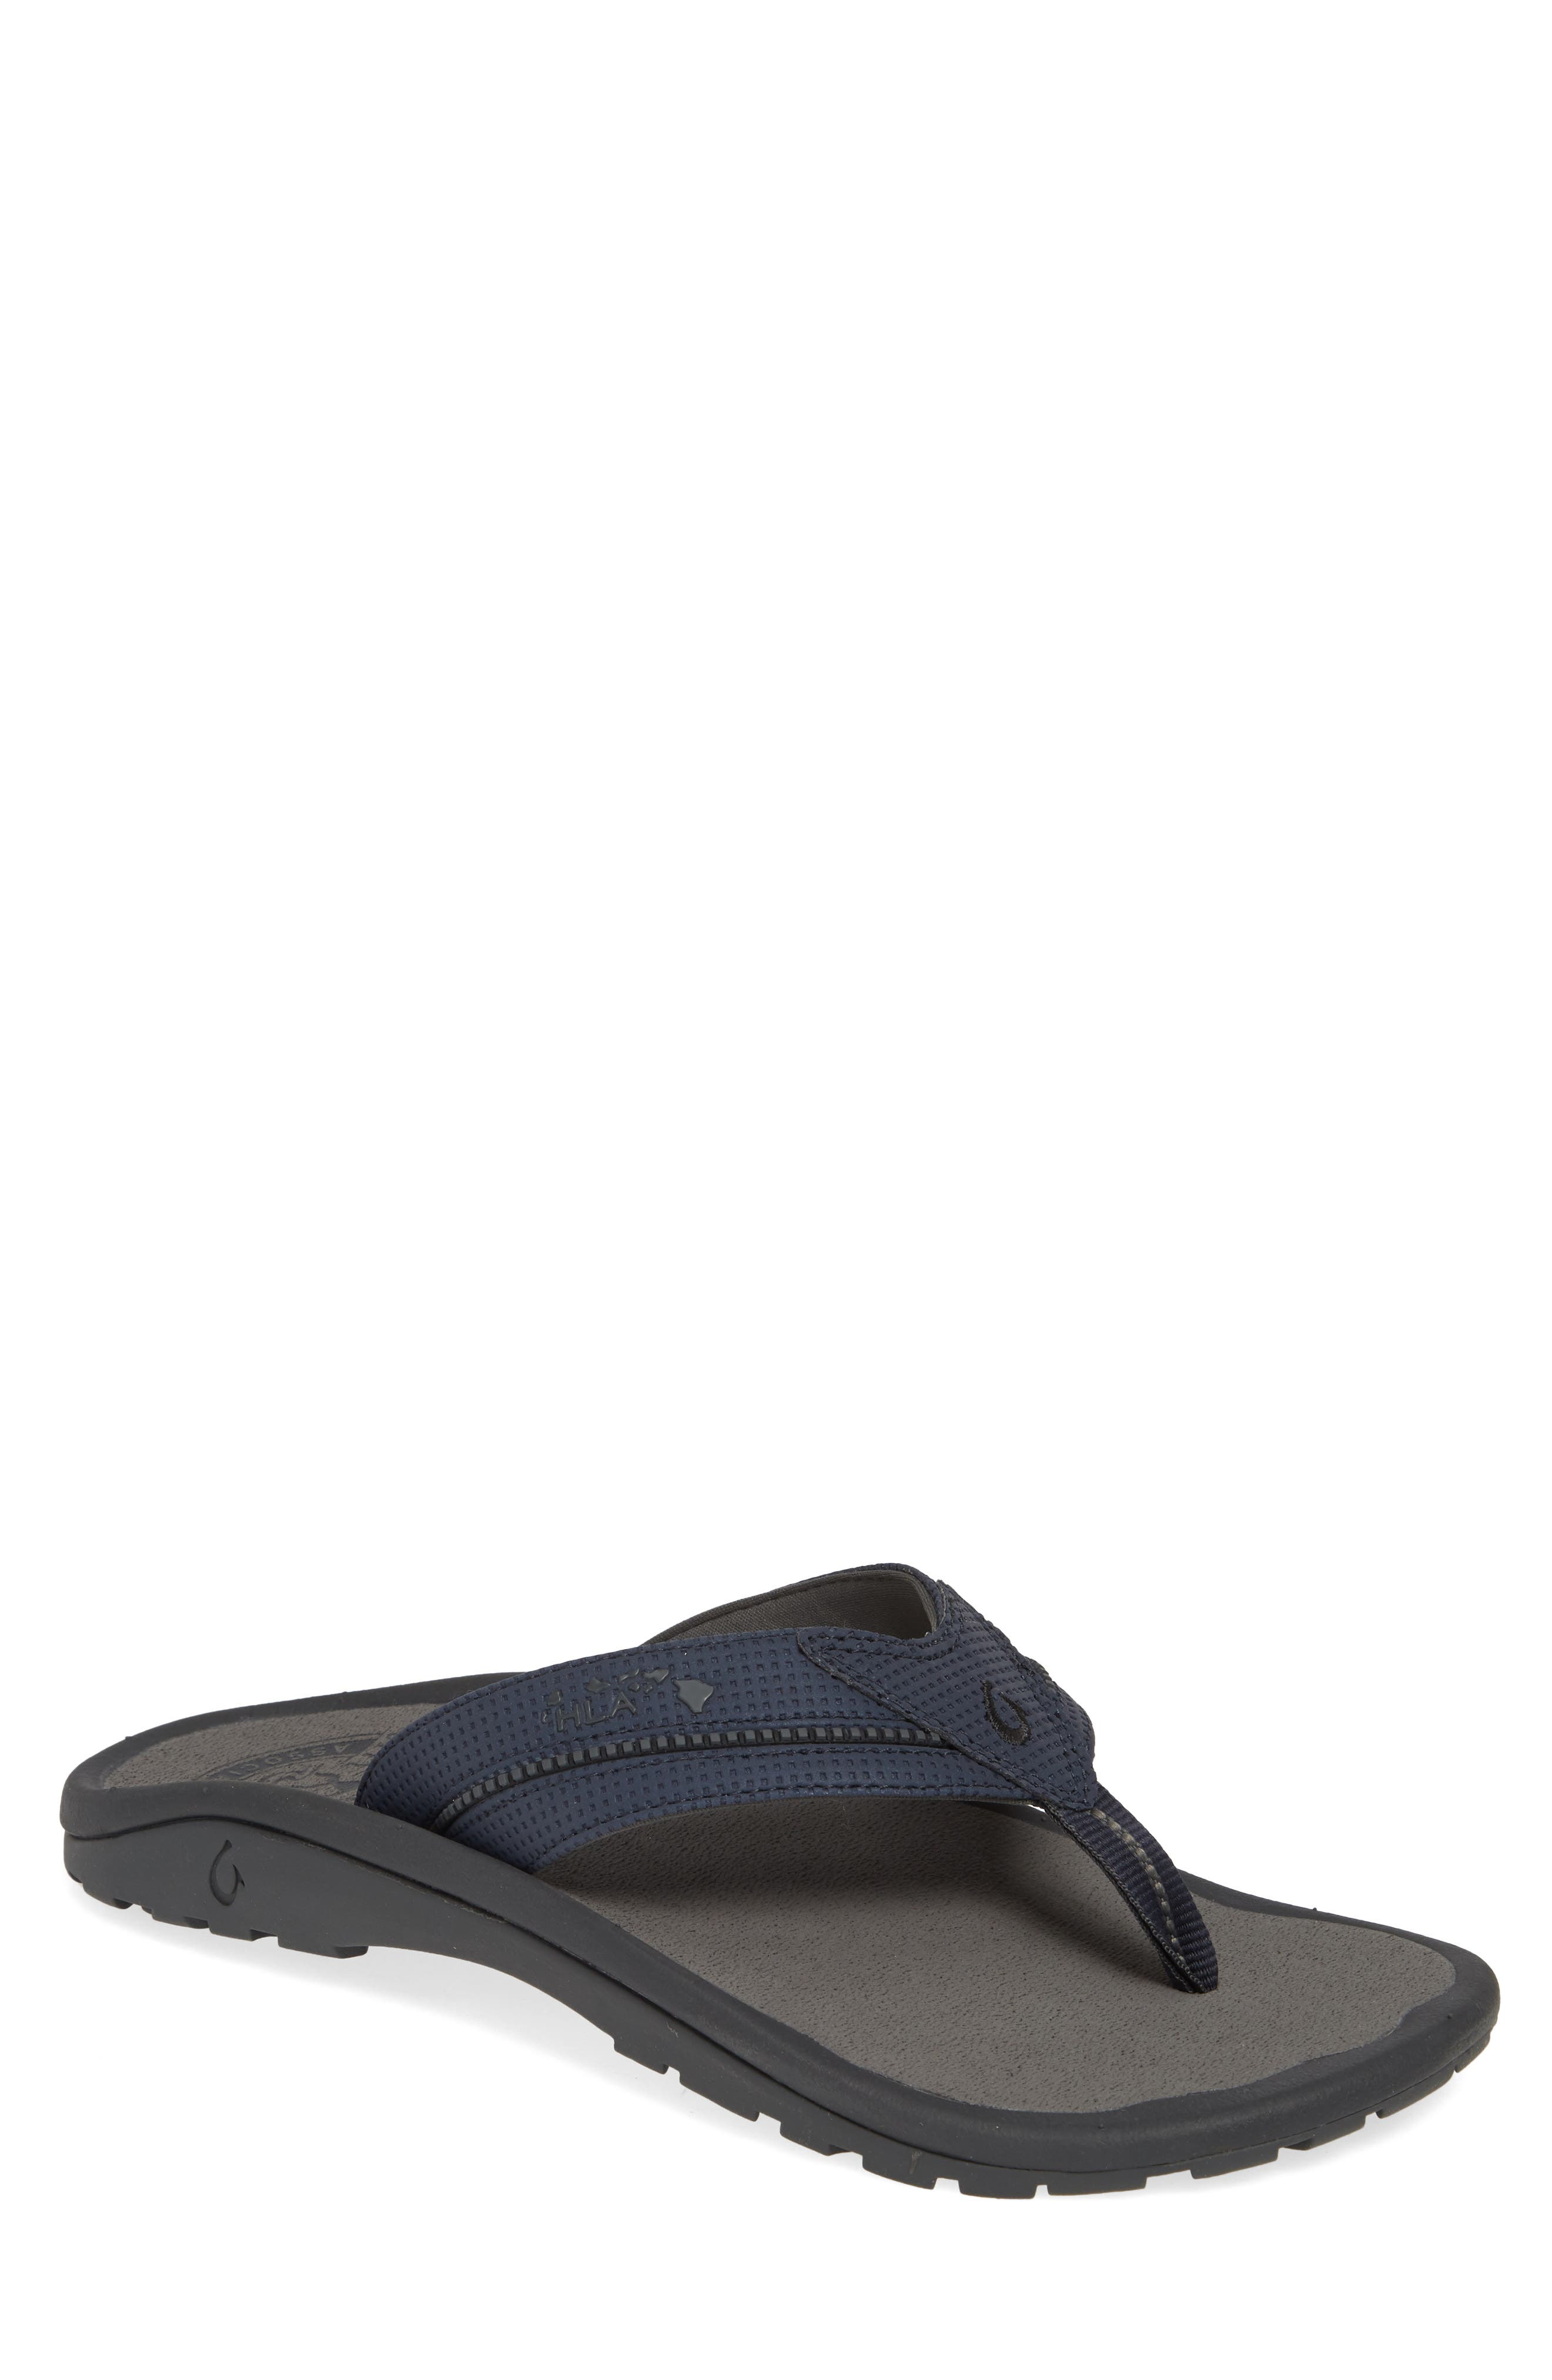 OLUKAI 'Kia'i II' Flip Flop, Main, color, TRENCH BLUE/ CHARCOAL